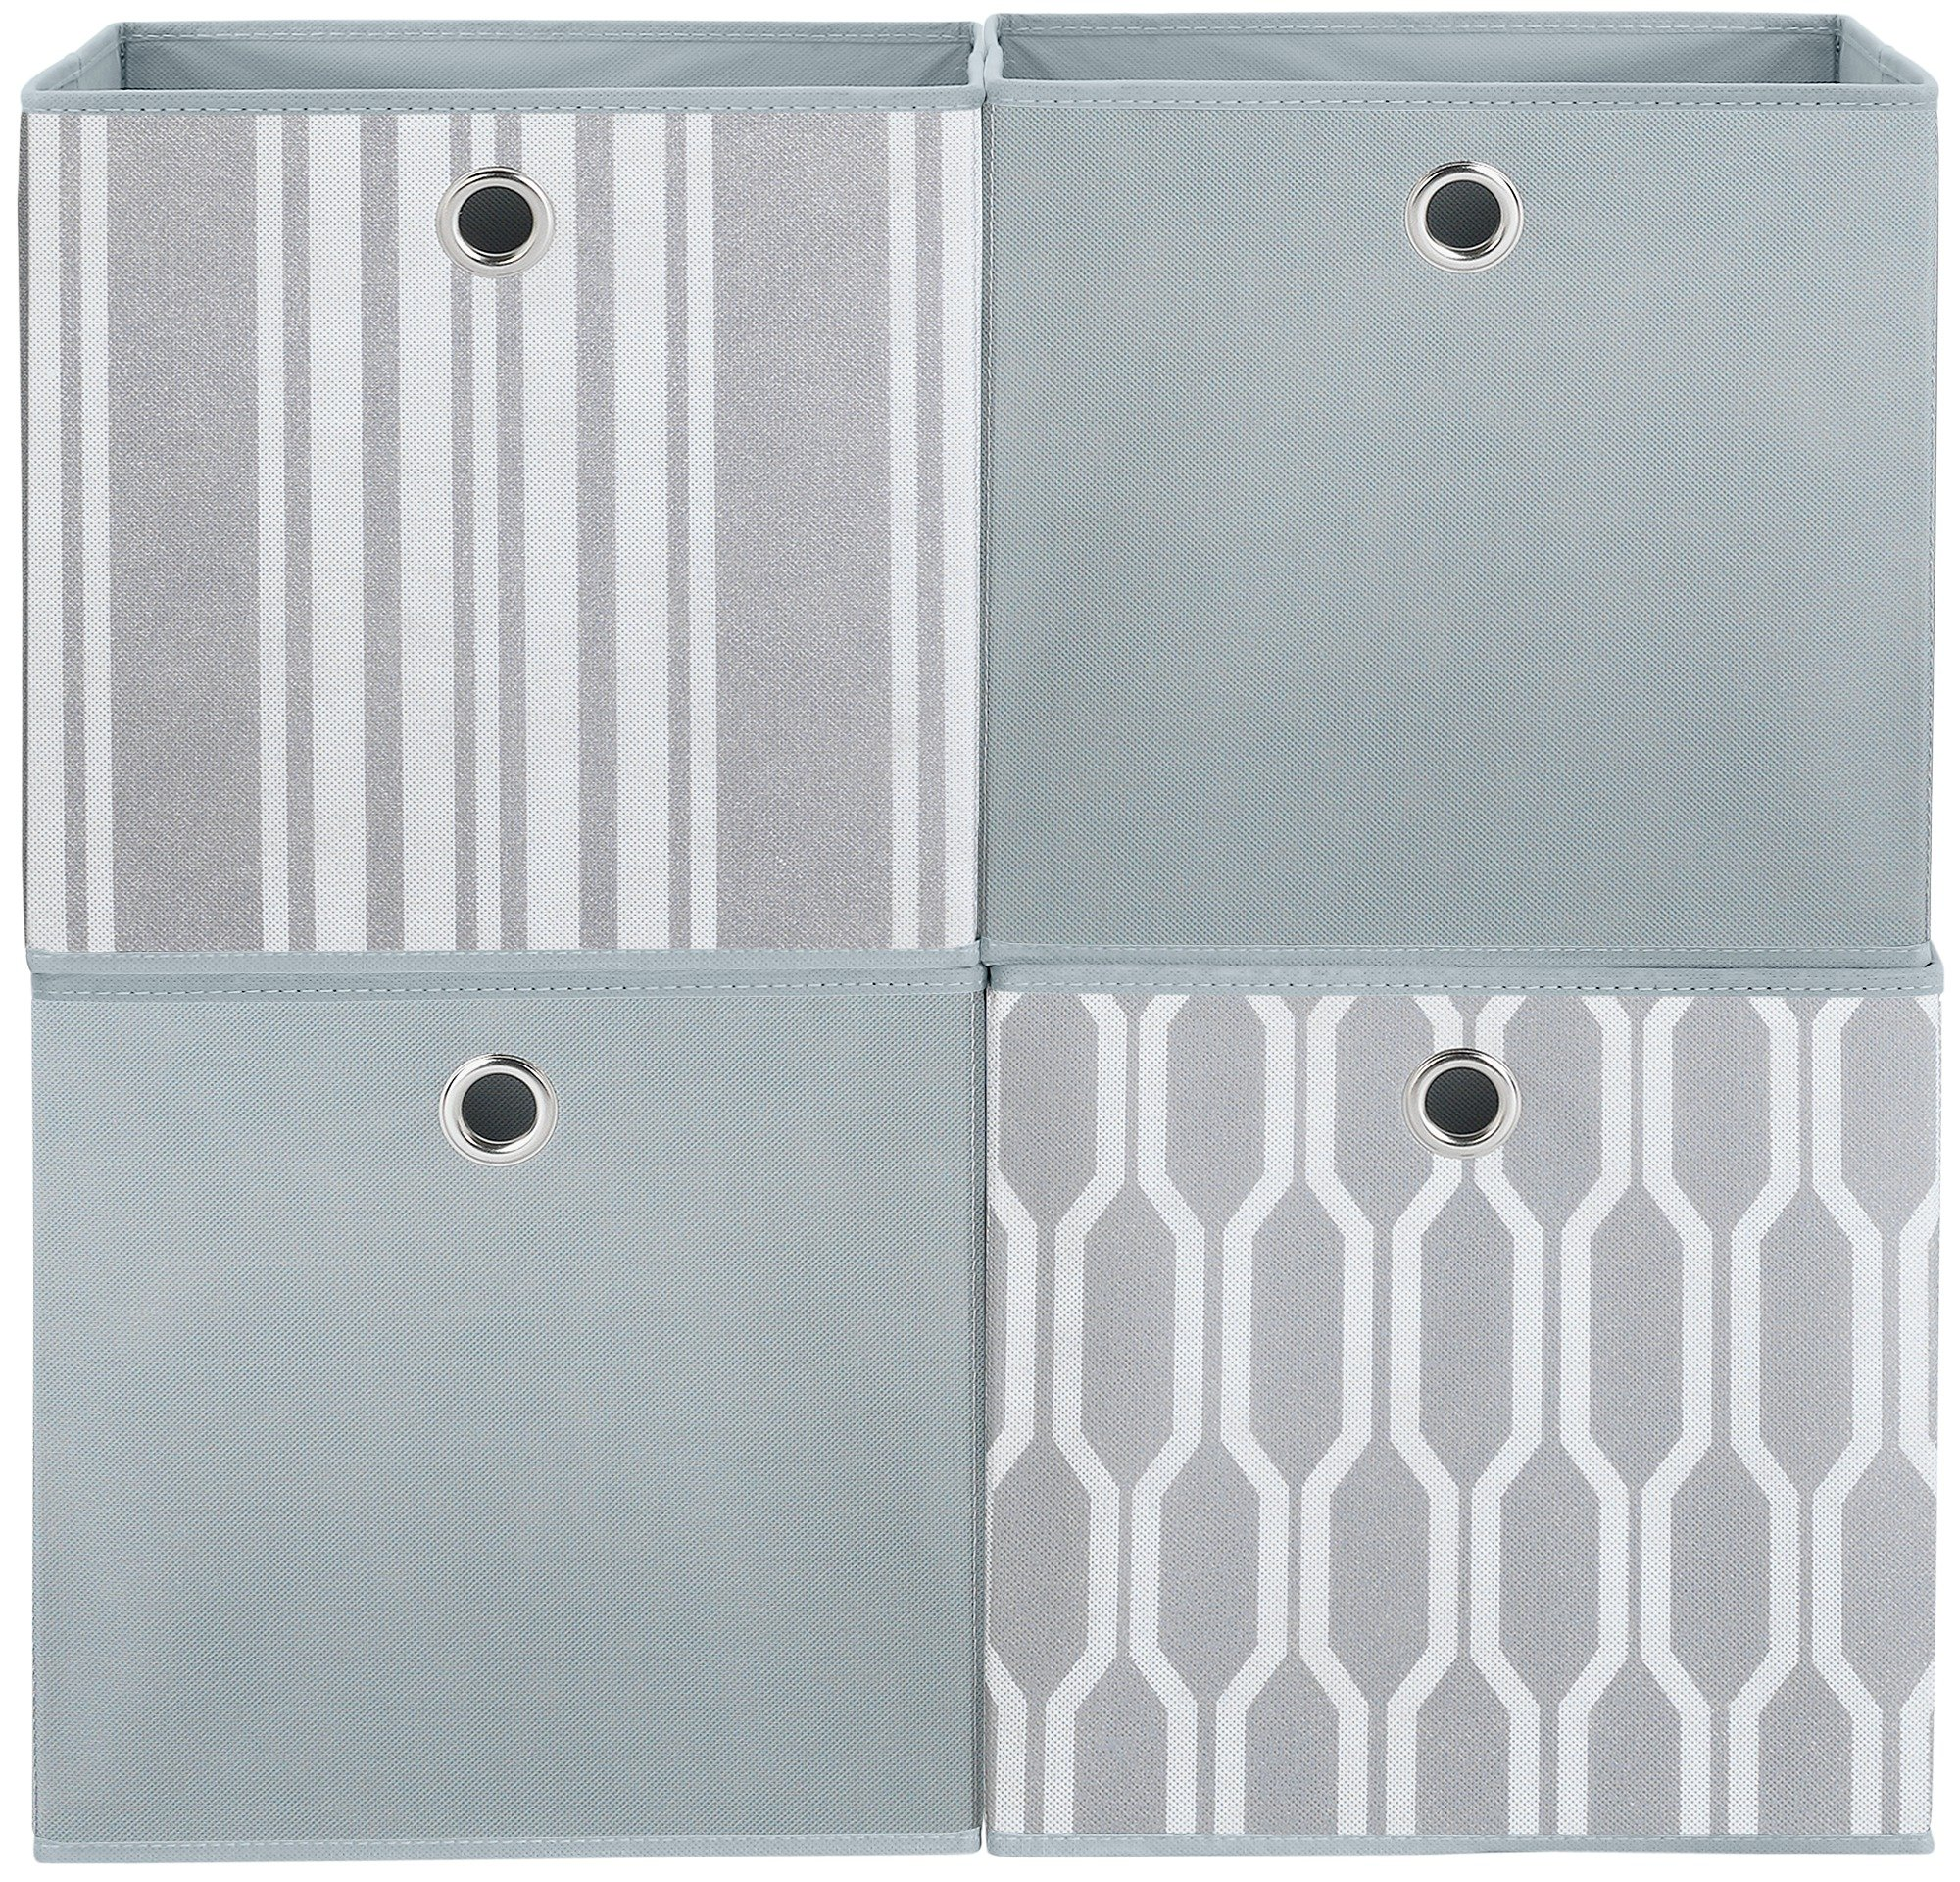 Argos Home Set Of 4 Non Woven Boxes   Grey Geo